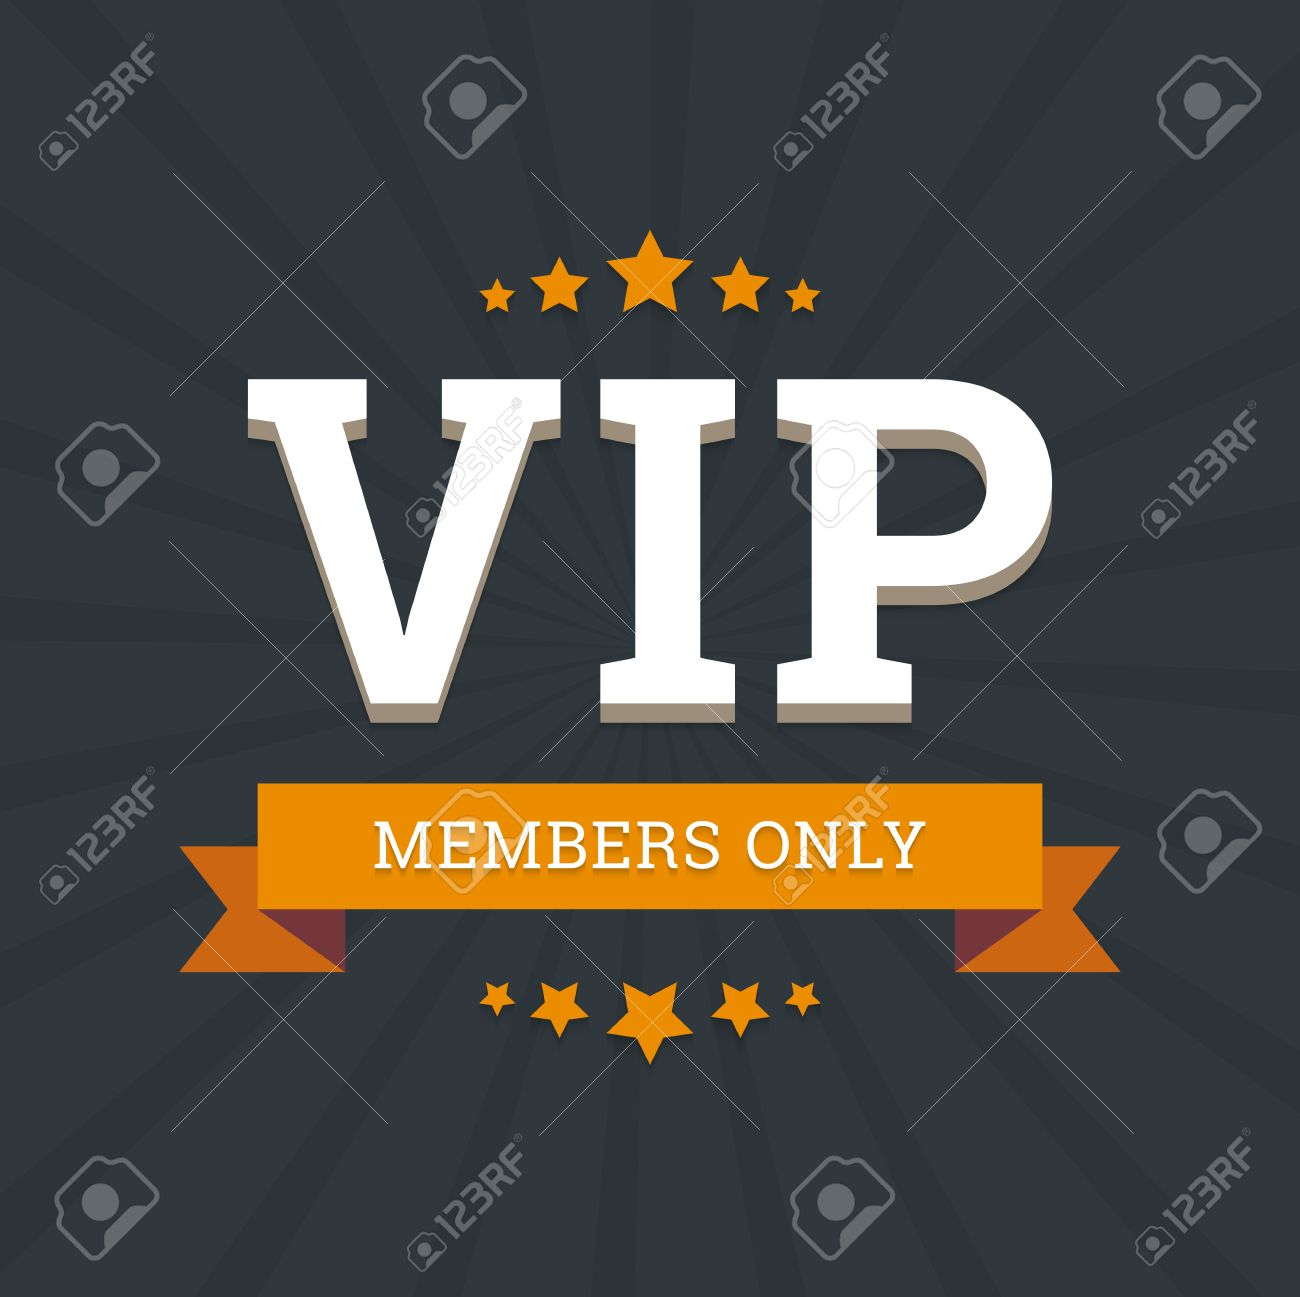 2686 Vip Pass Illustrations Cliparts And Royalty Free Vip – Vip Ticket Template